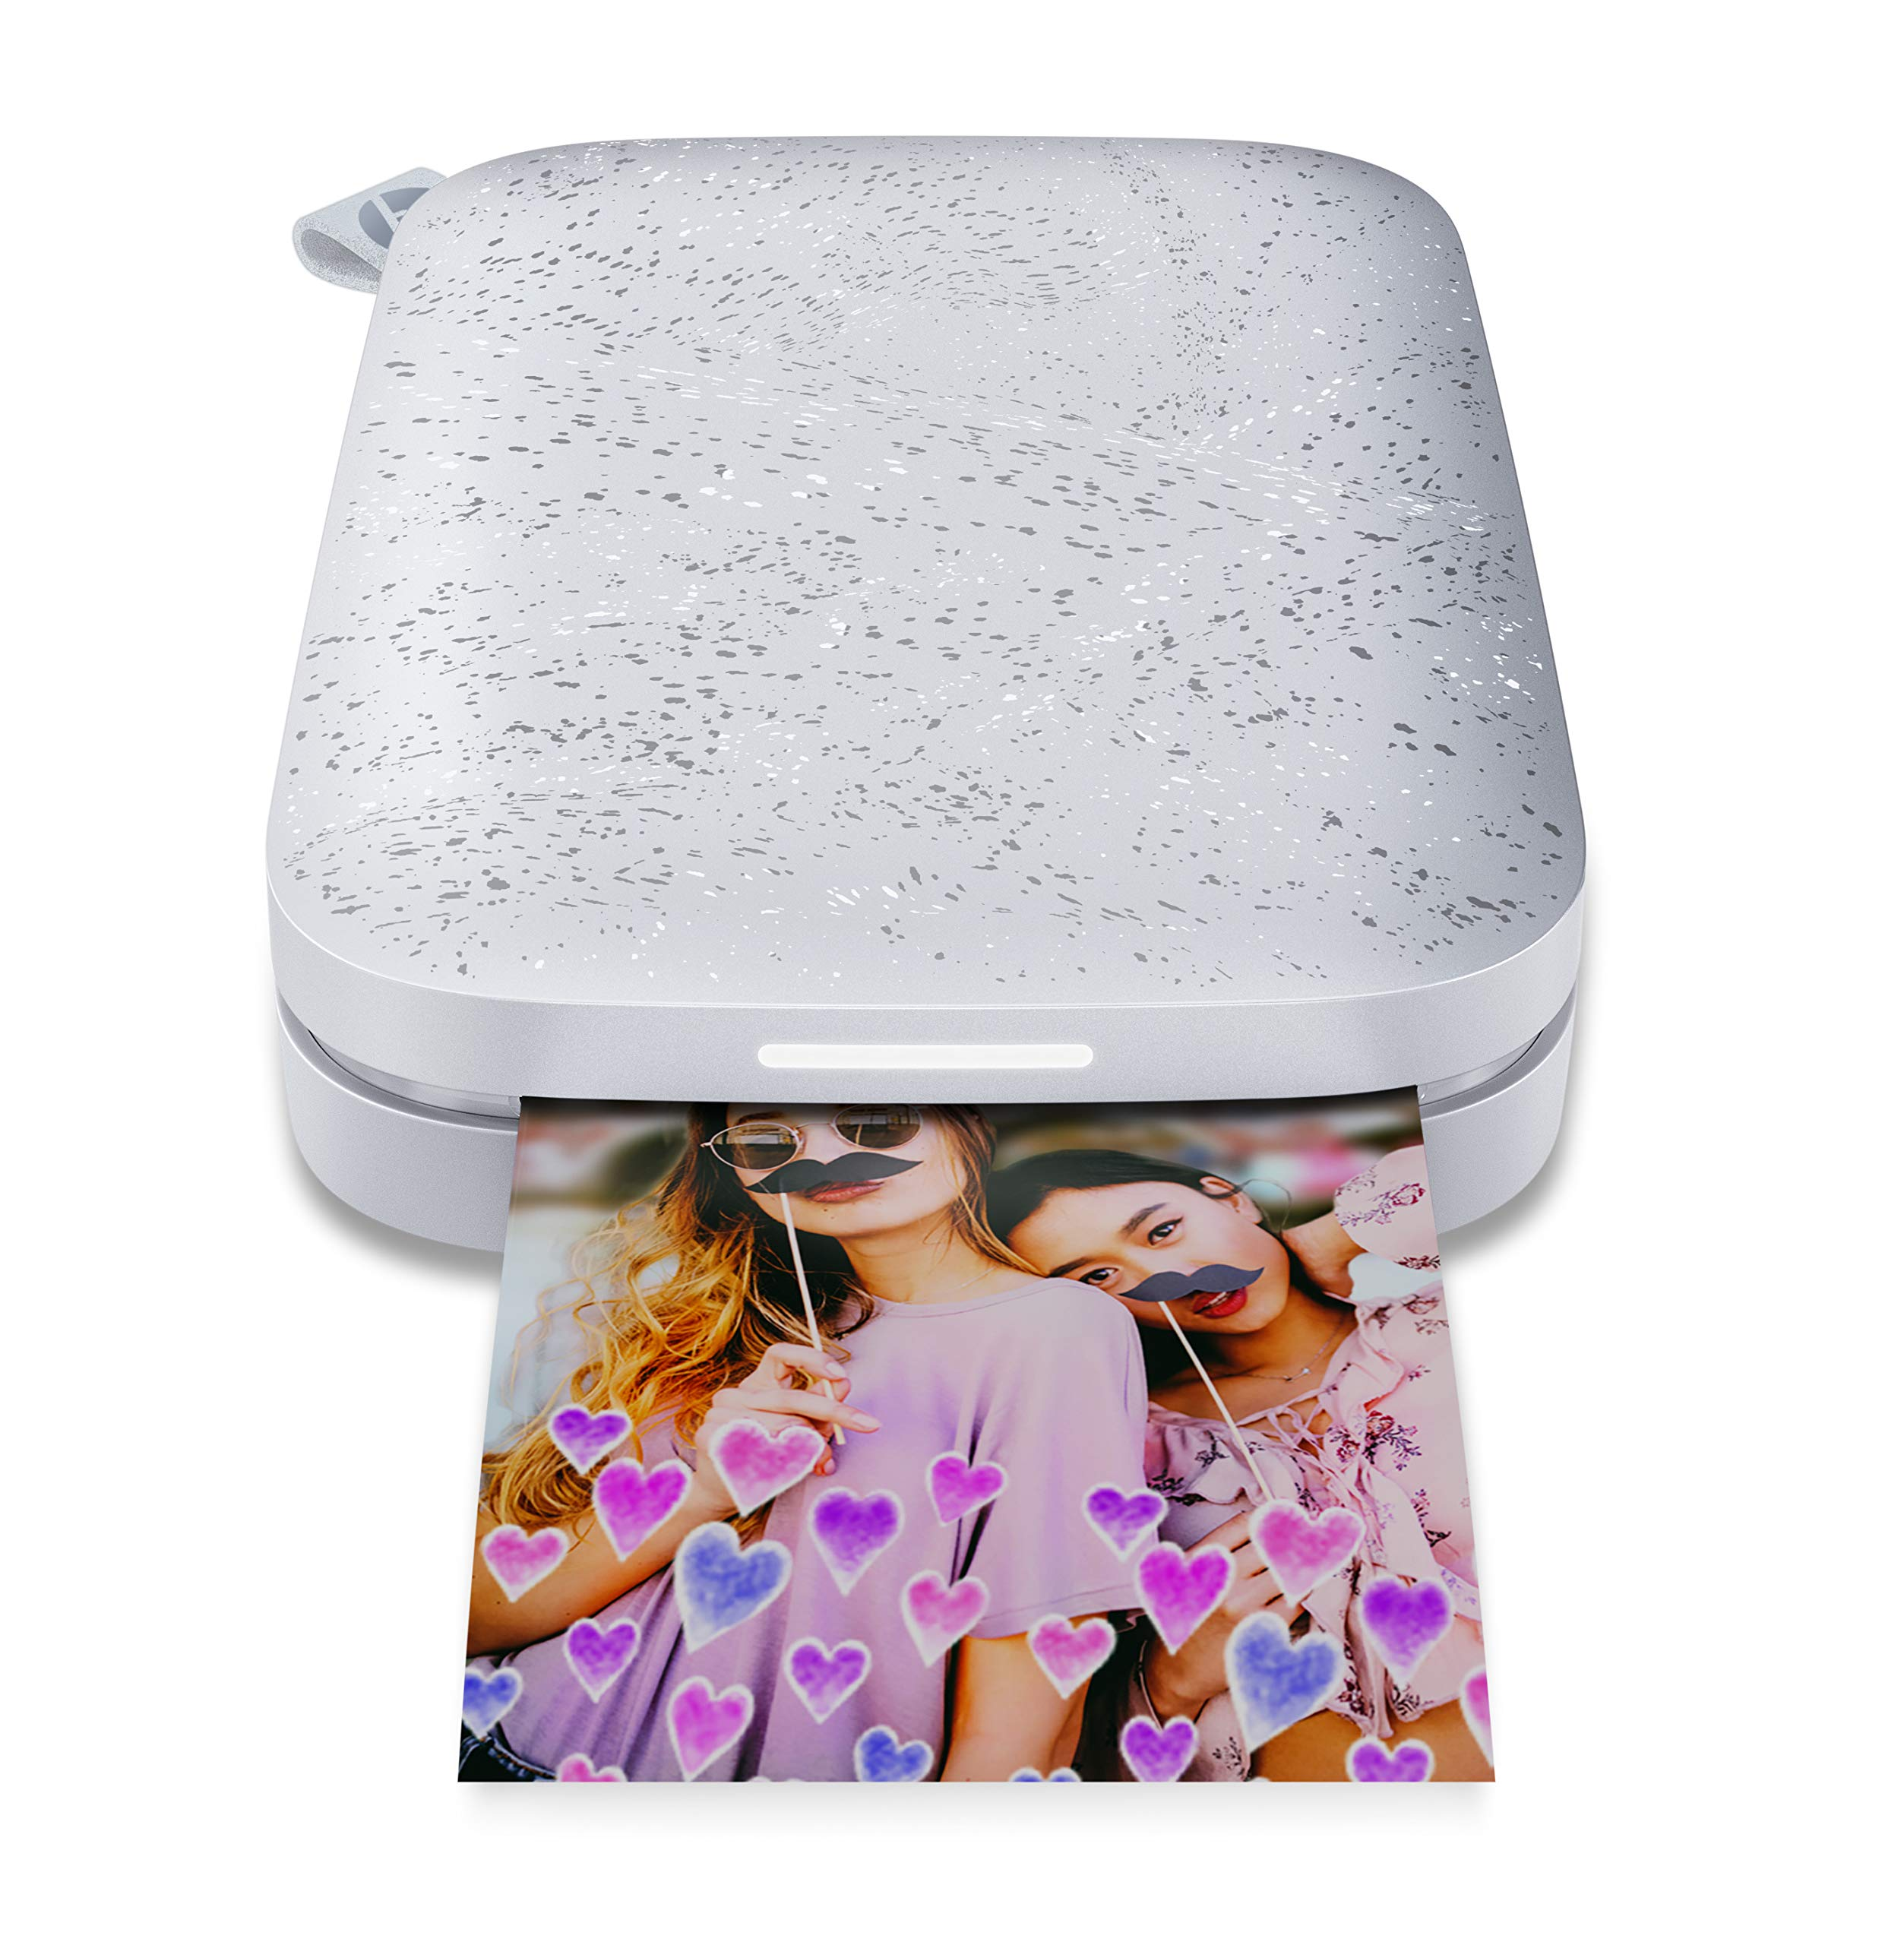 HP Sprocket Portable Photo Printer (2nd Edition) - Instantly Print 2x3 Sticky-Backed Photos from Your Phone - [Luna Pearl] [1AS85A] by HP